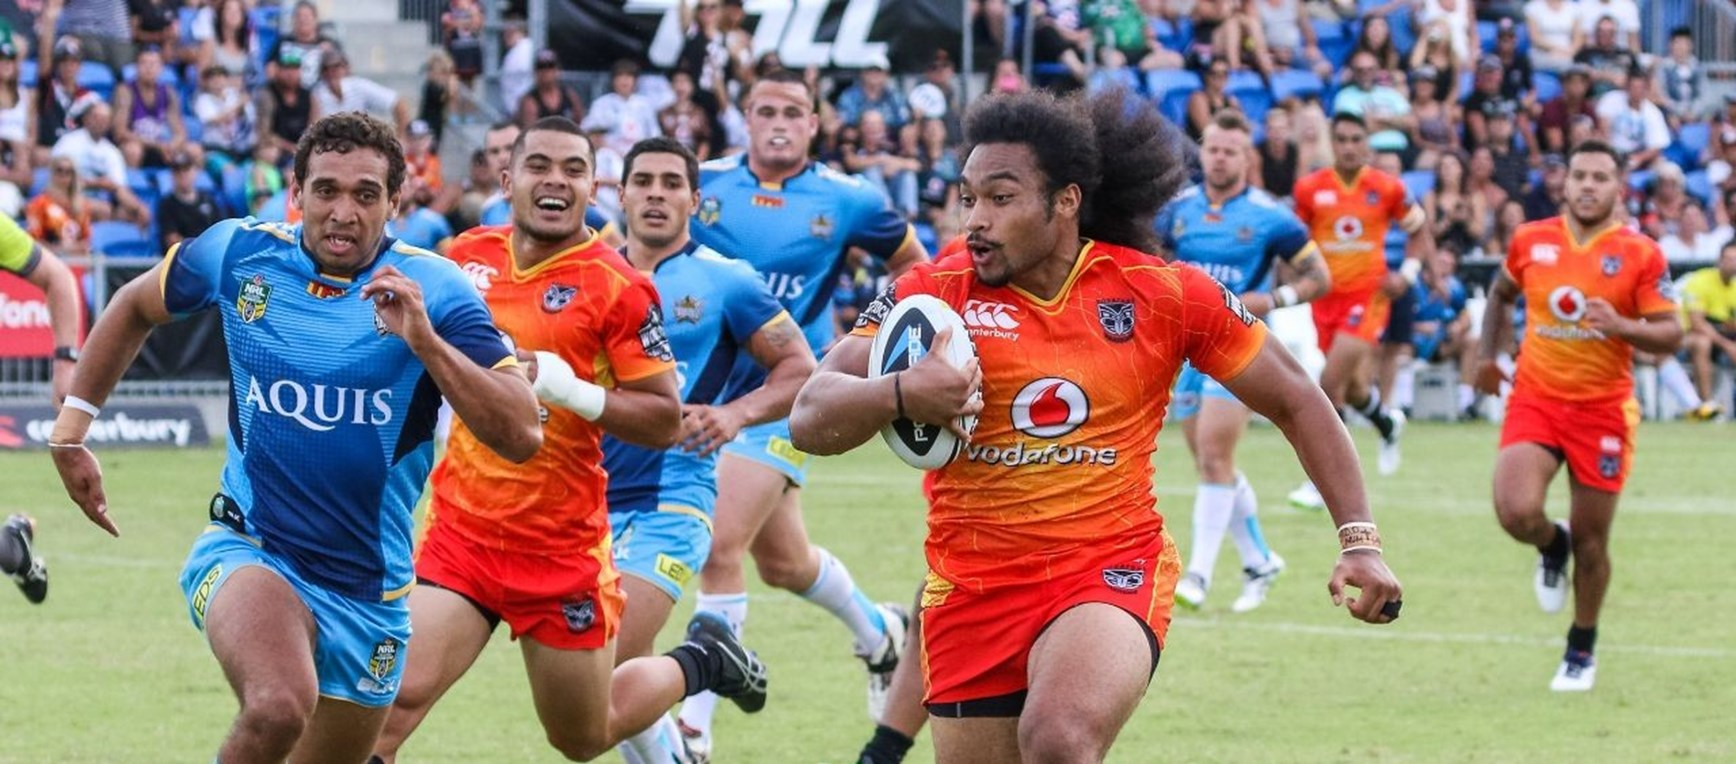 Whangarei trial in pictures